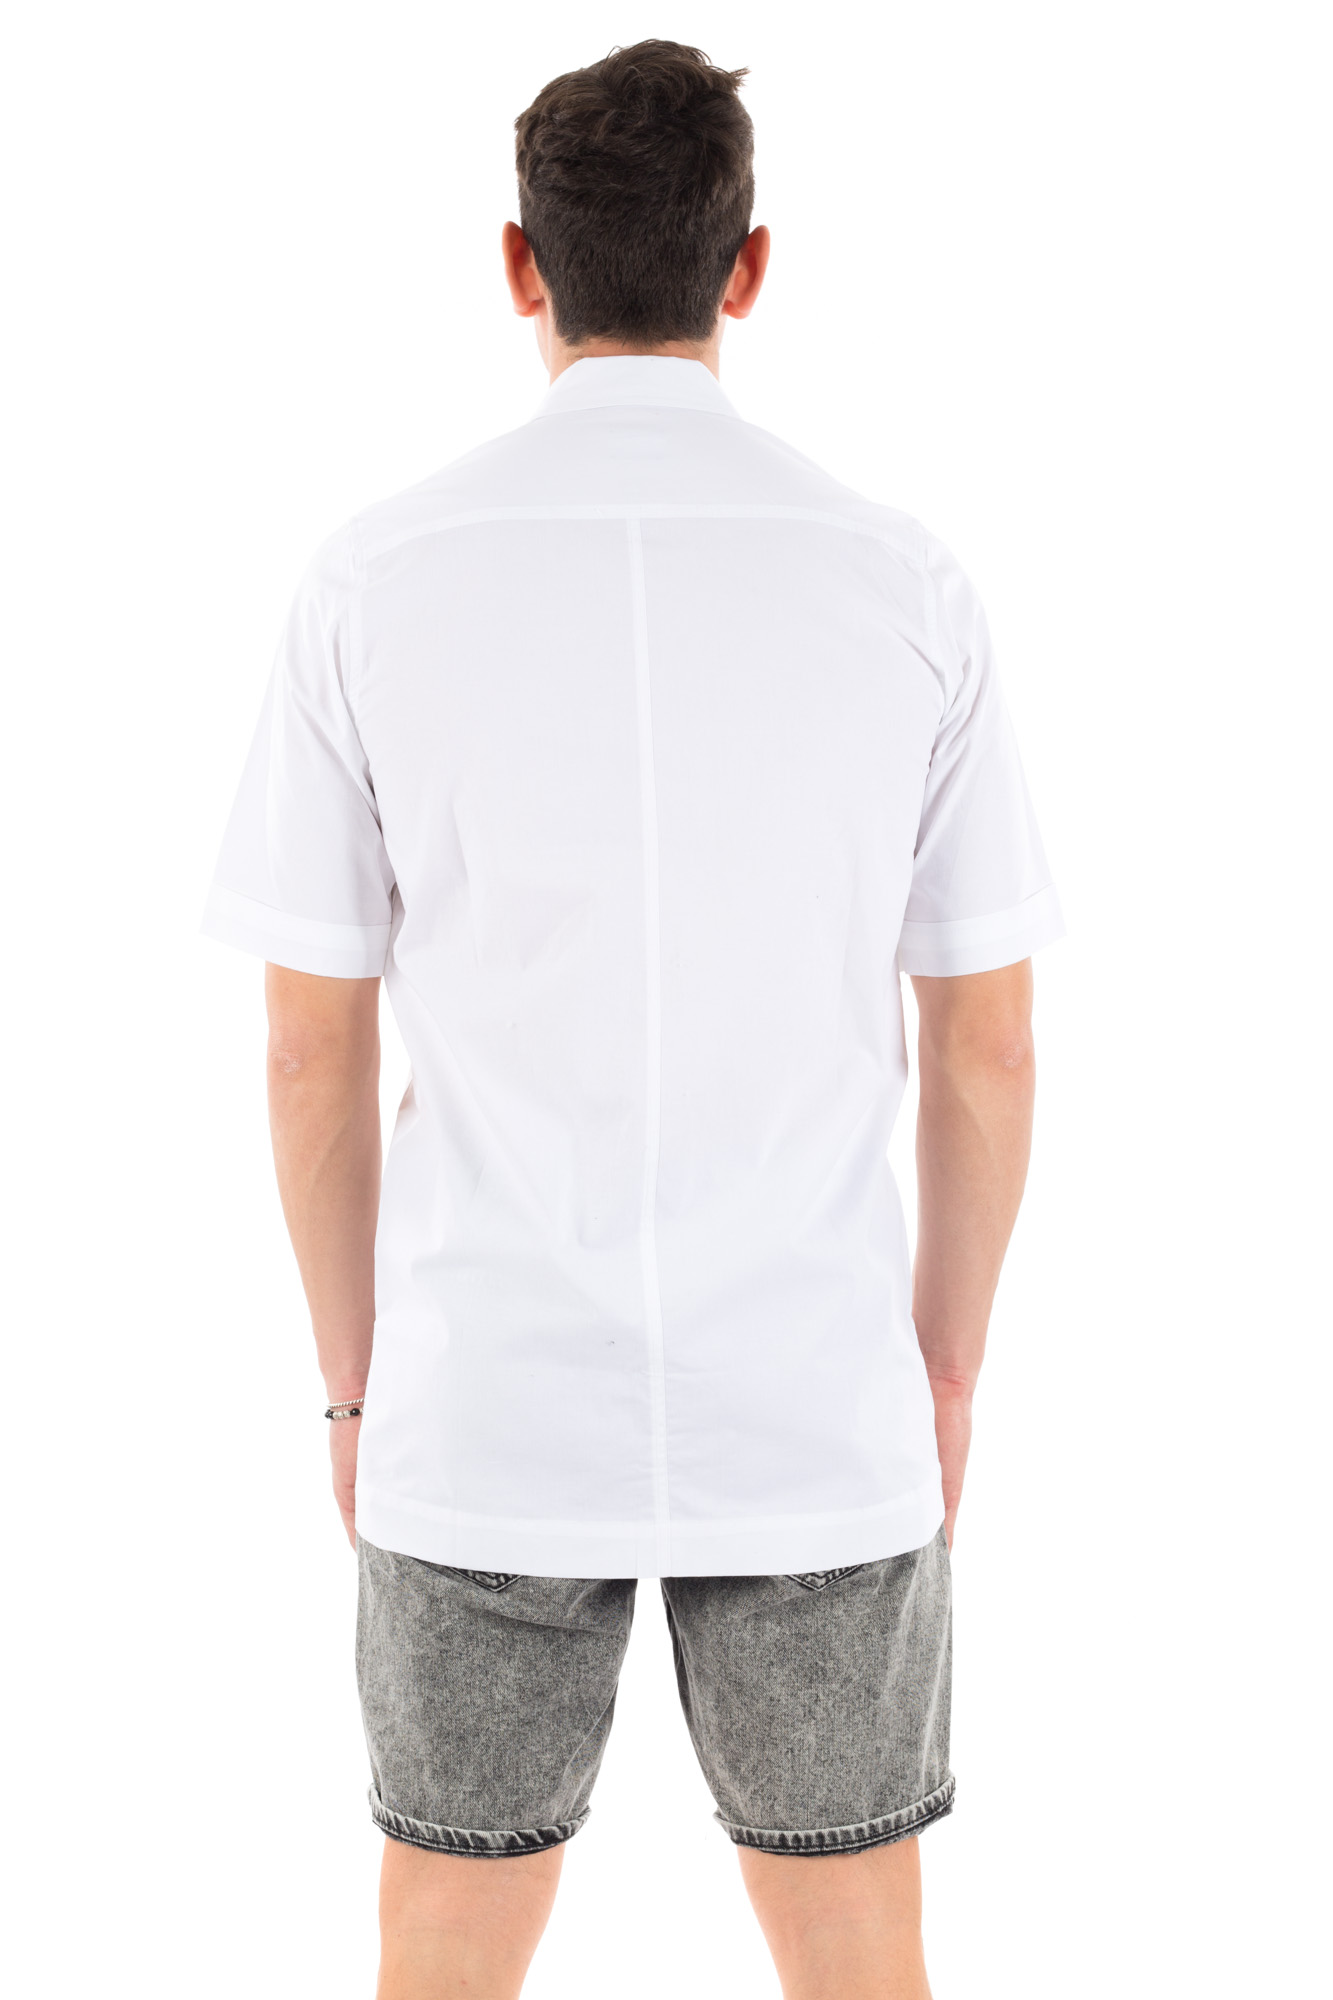 Numero 00 - Shirt with double front pocket